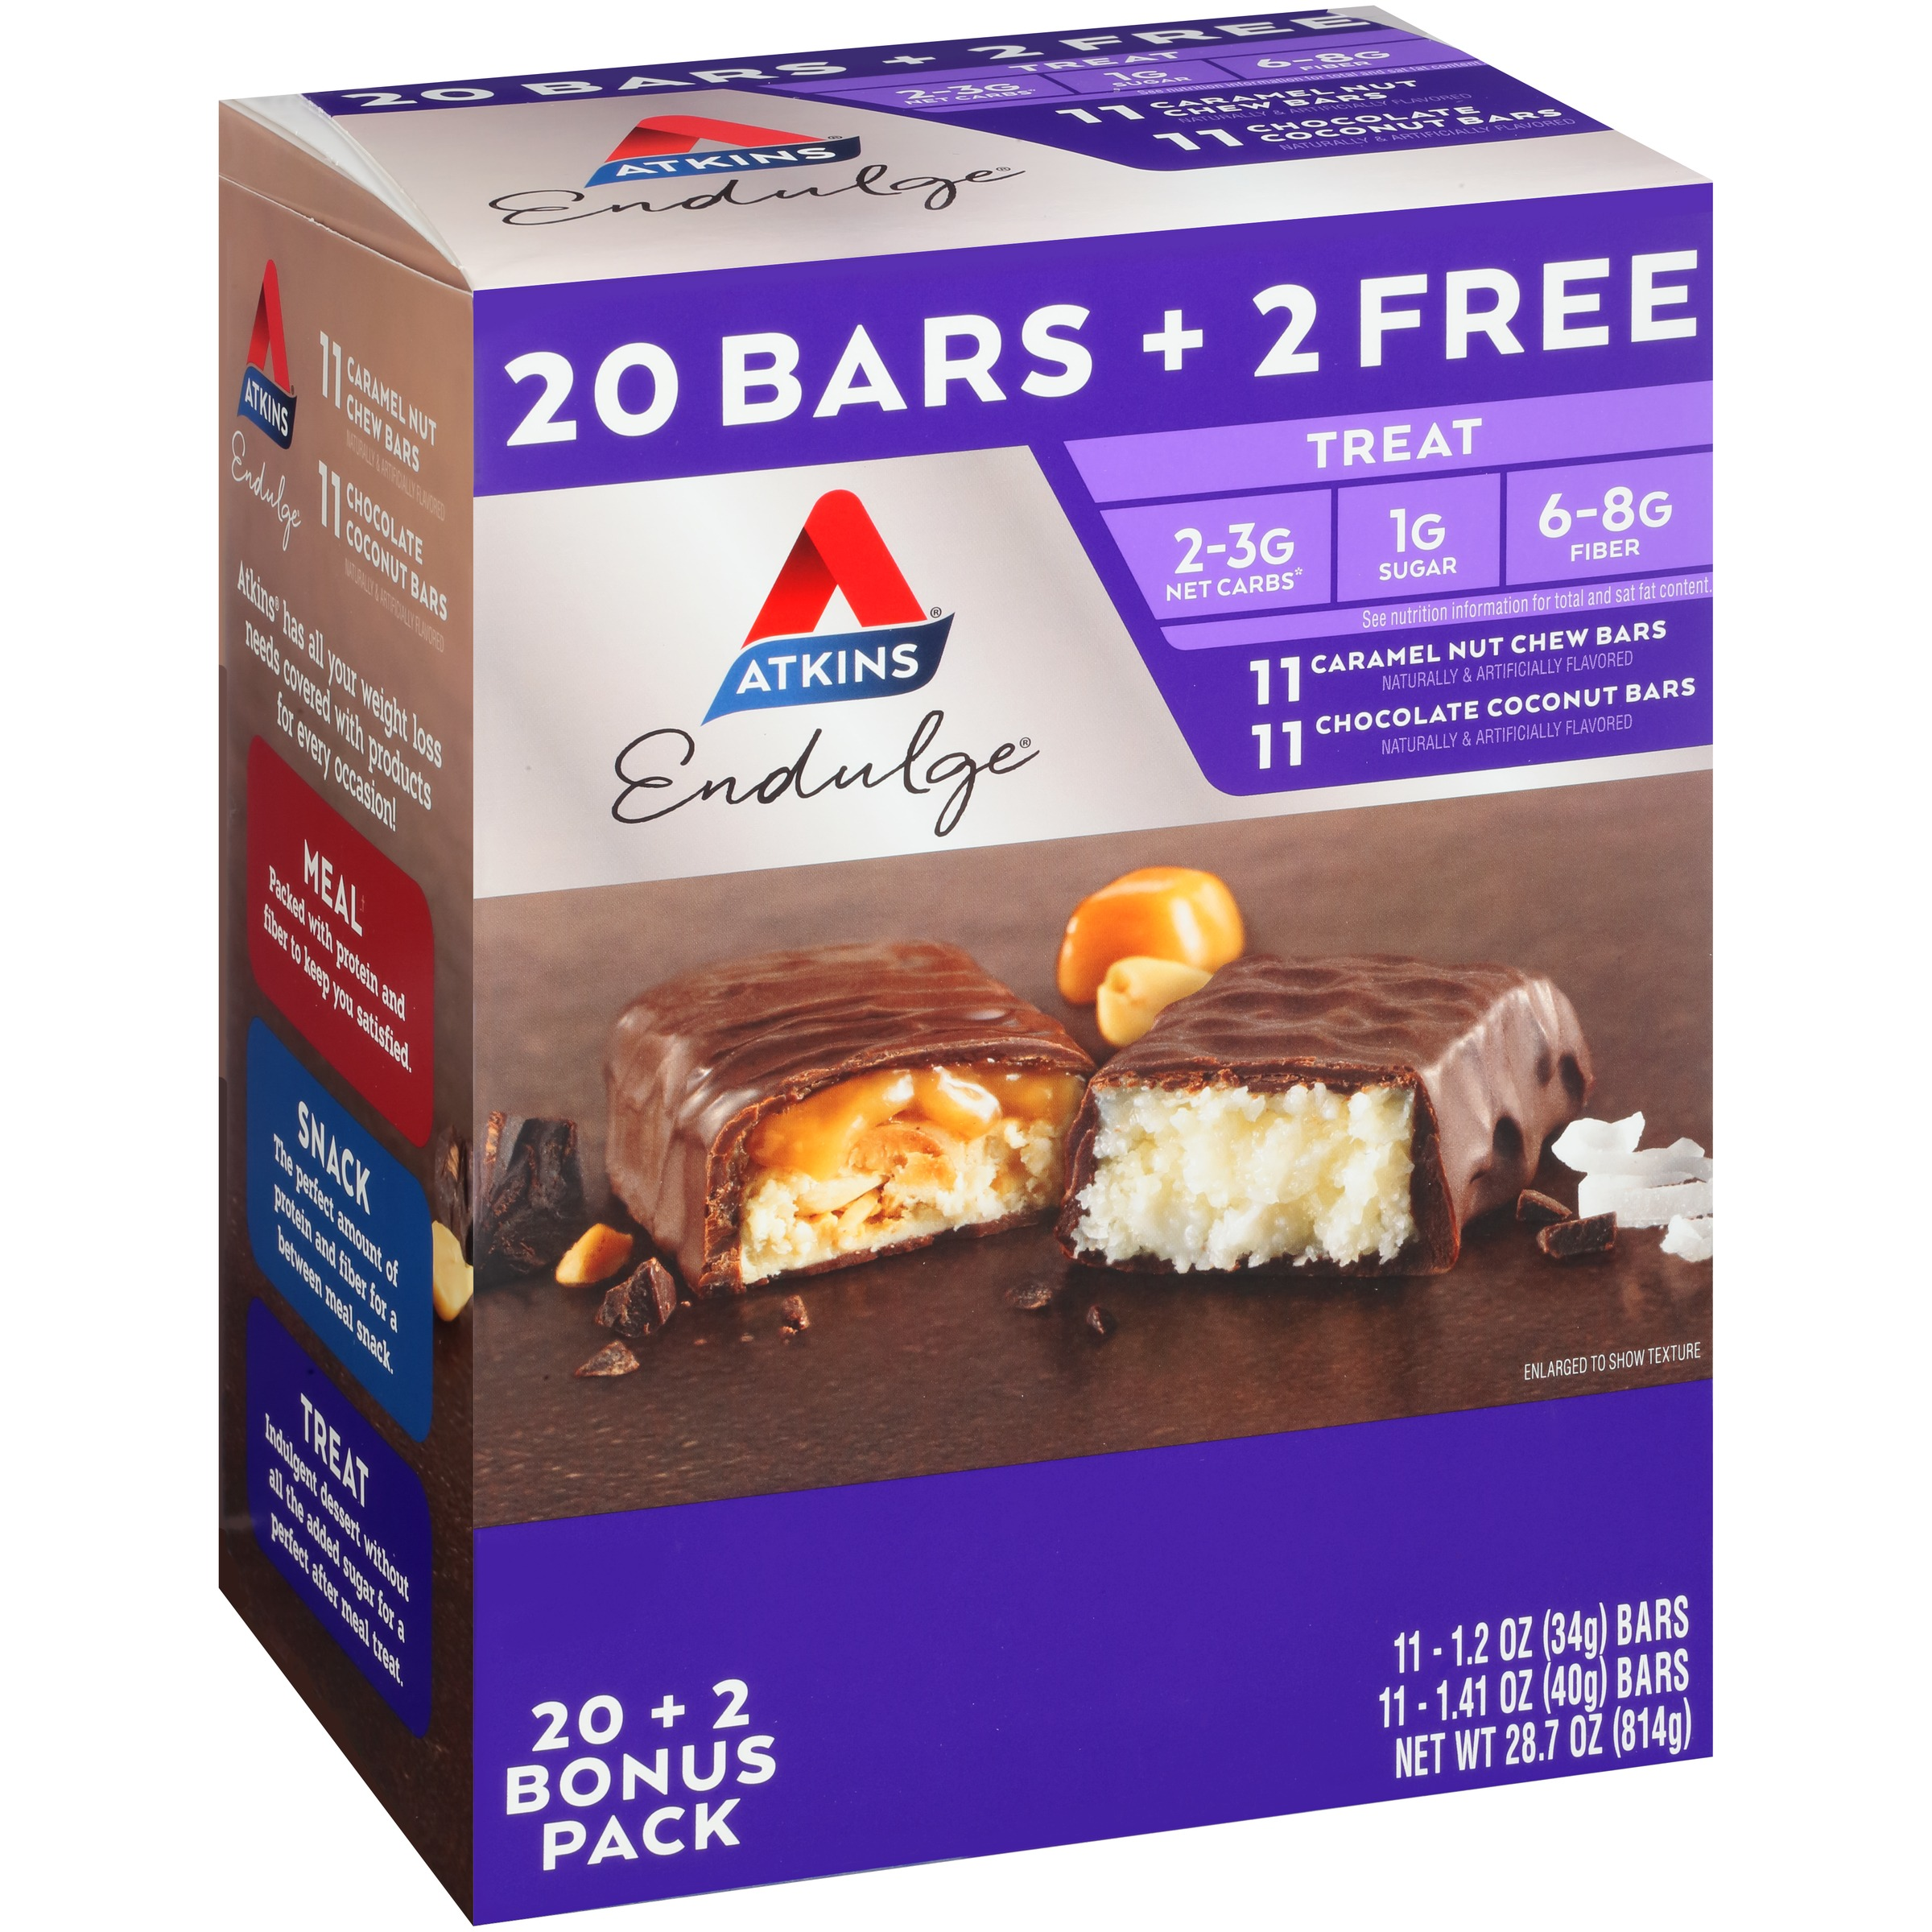 Atkins® Endulge® Caramel Nut Chew/Chocolate Coconut Treat Bars 28.7 oz. Box